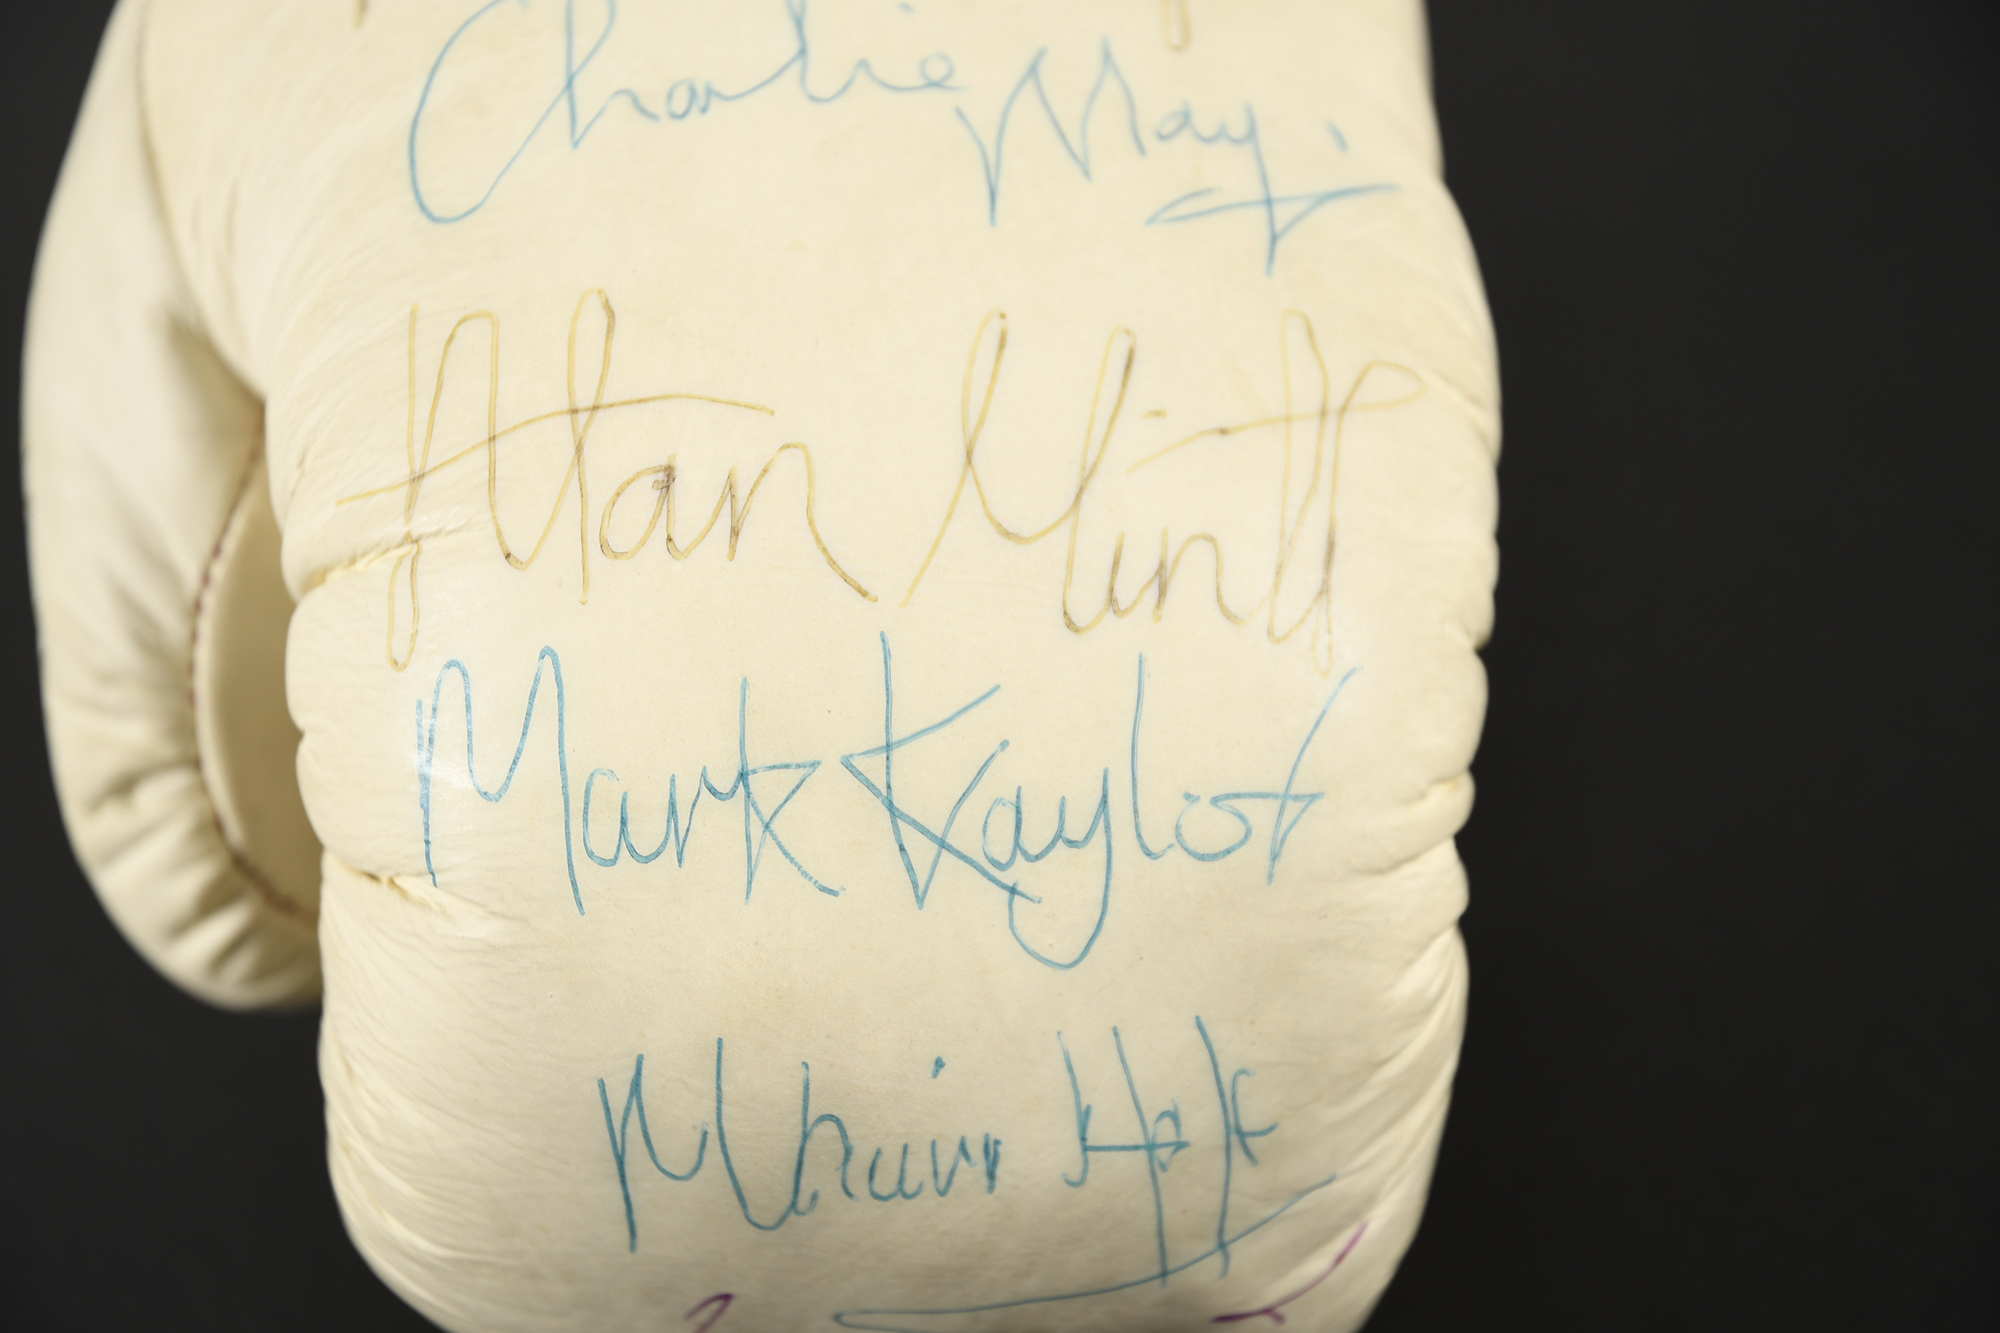 TITLE BOXING GLOVE Original signatures on glove - Image 2 of 4